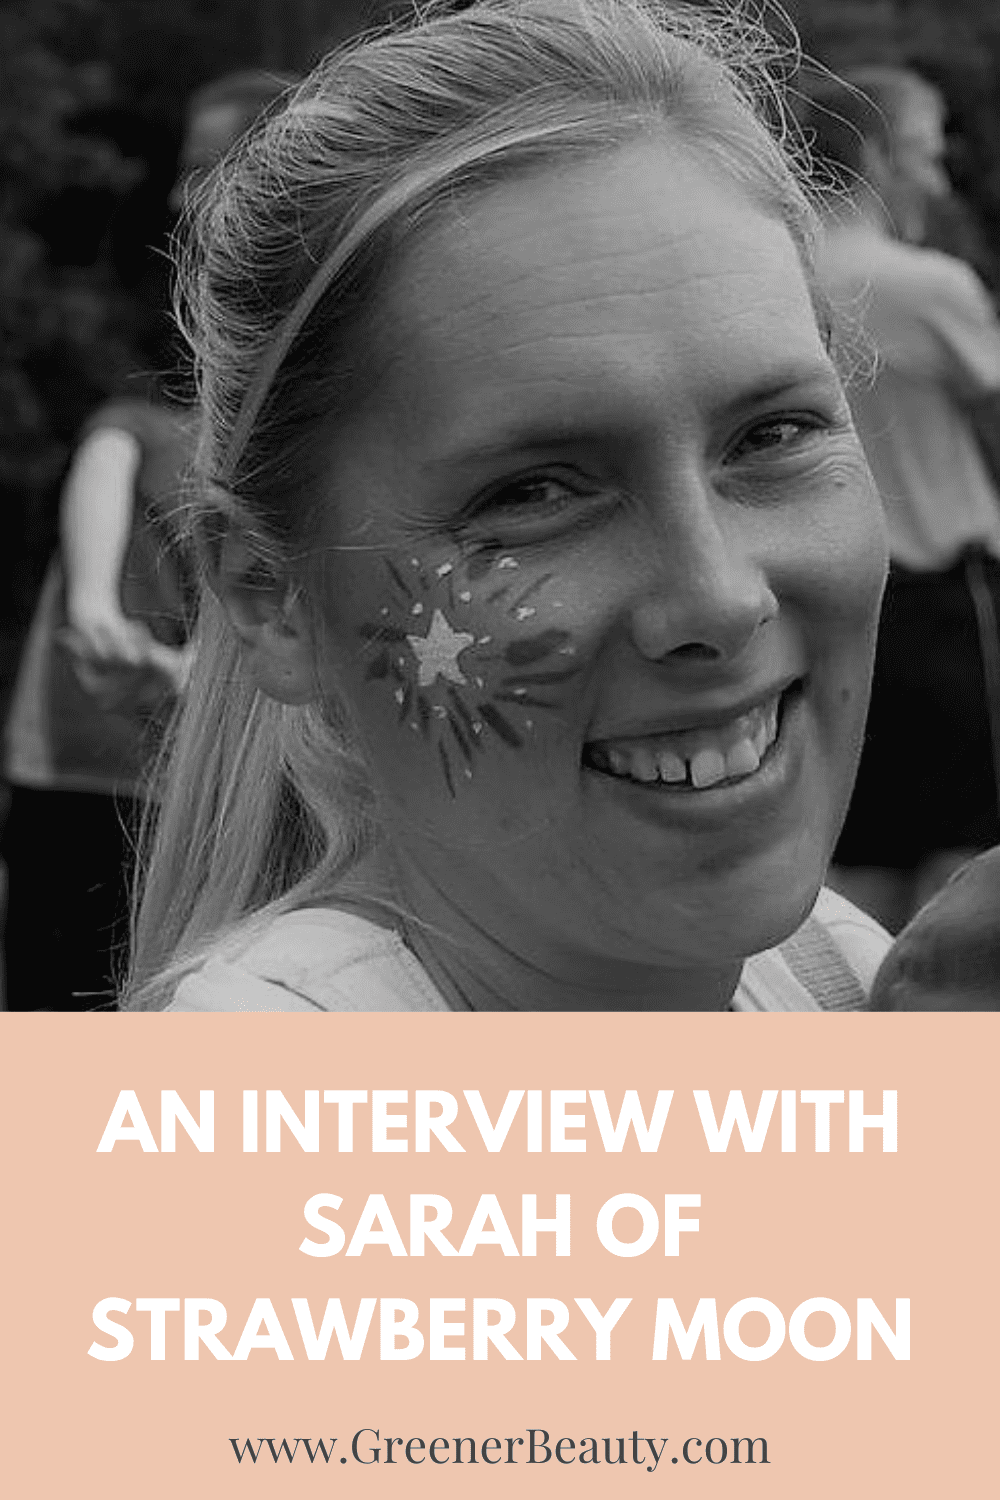 An Interview with Sarah of Strawberry Moon